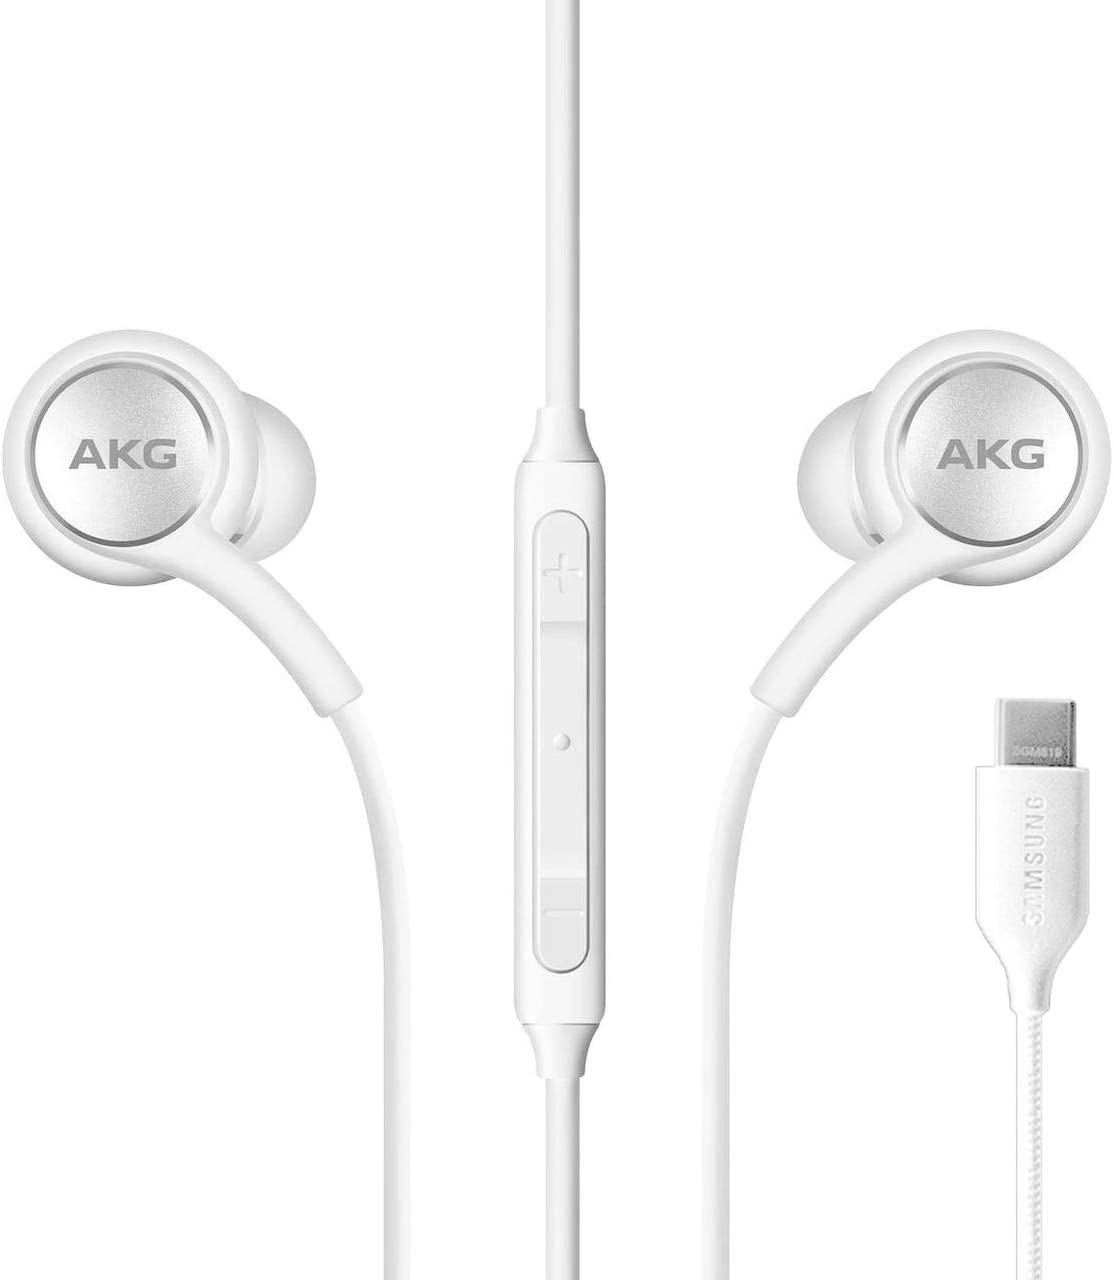 ElloGear 2020 Earbuds Stereo Headphones for Samsung Galaxy Note 10, Note 10+, Galaxy S10, S9 Plus, S10e - Designed by AKG - Braided Cable with Microphone and Volume Remote Type-C Connector - White